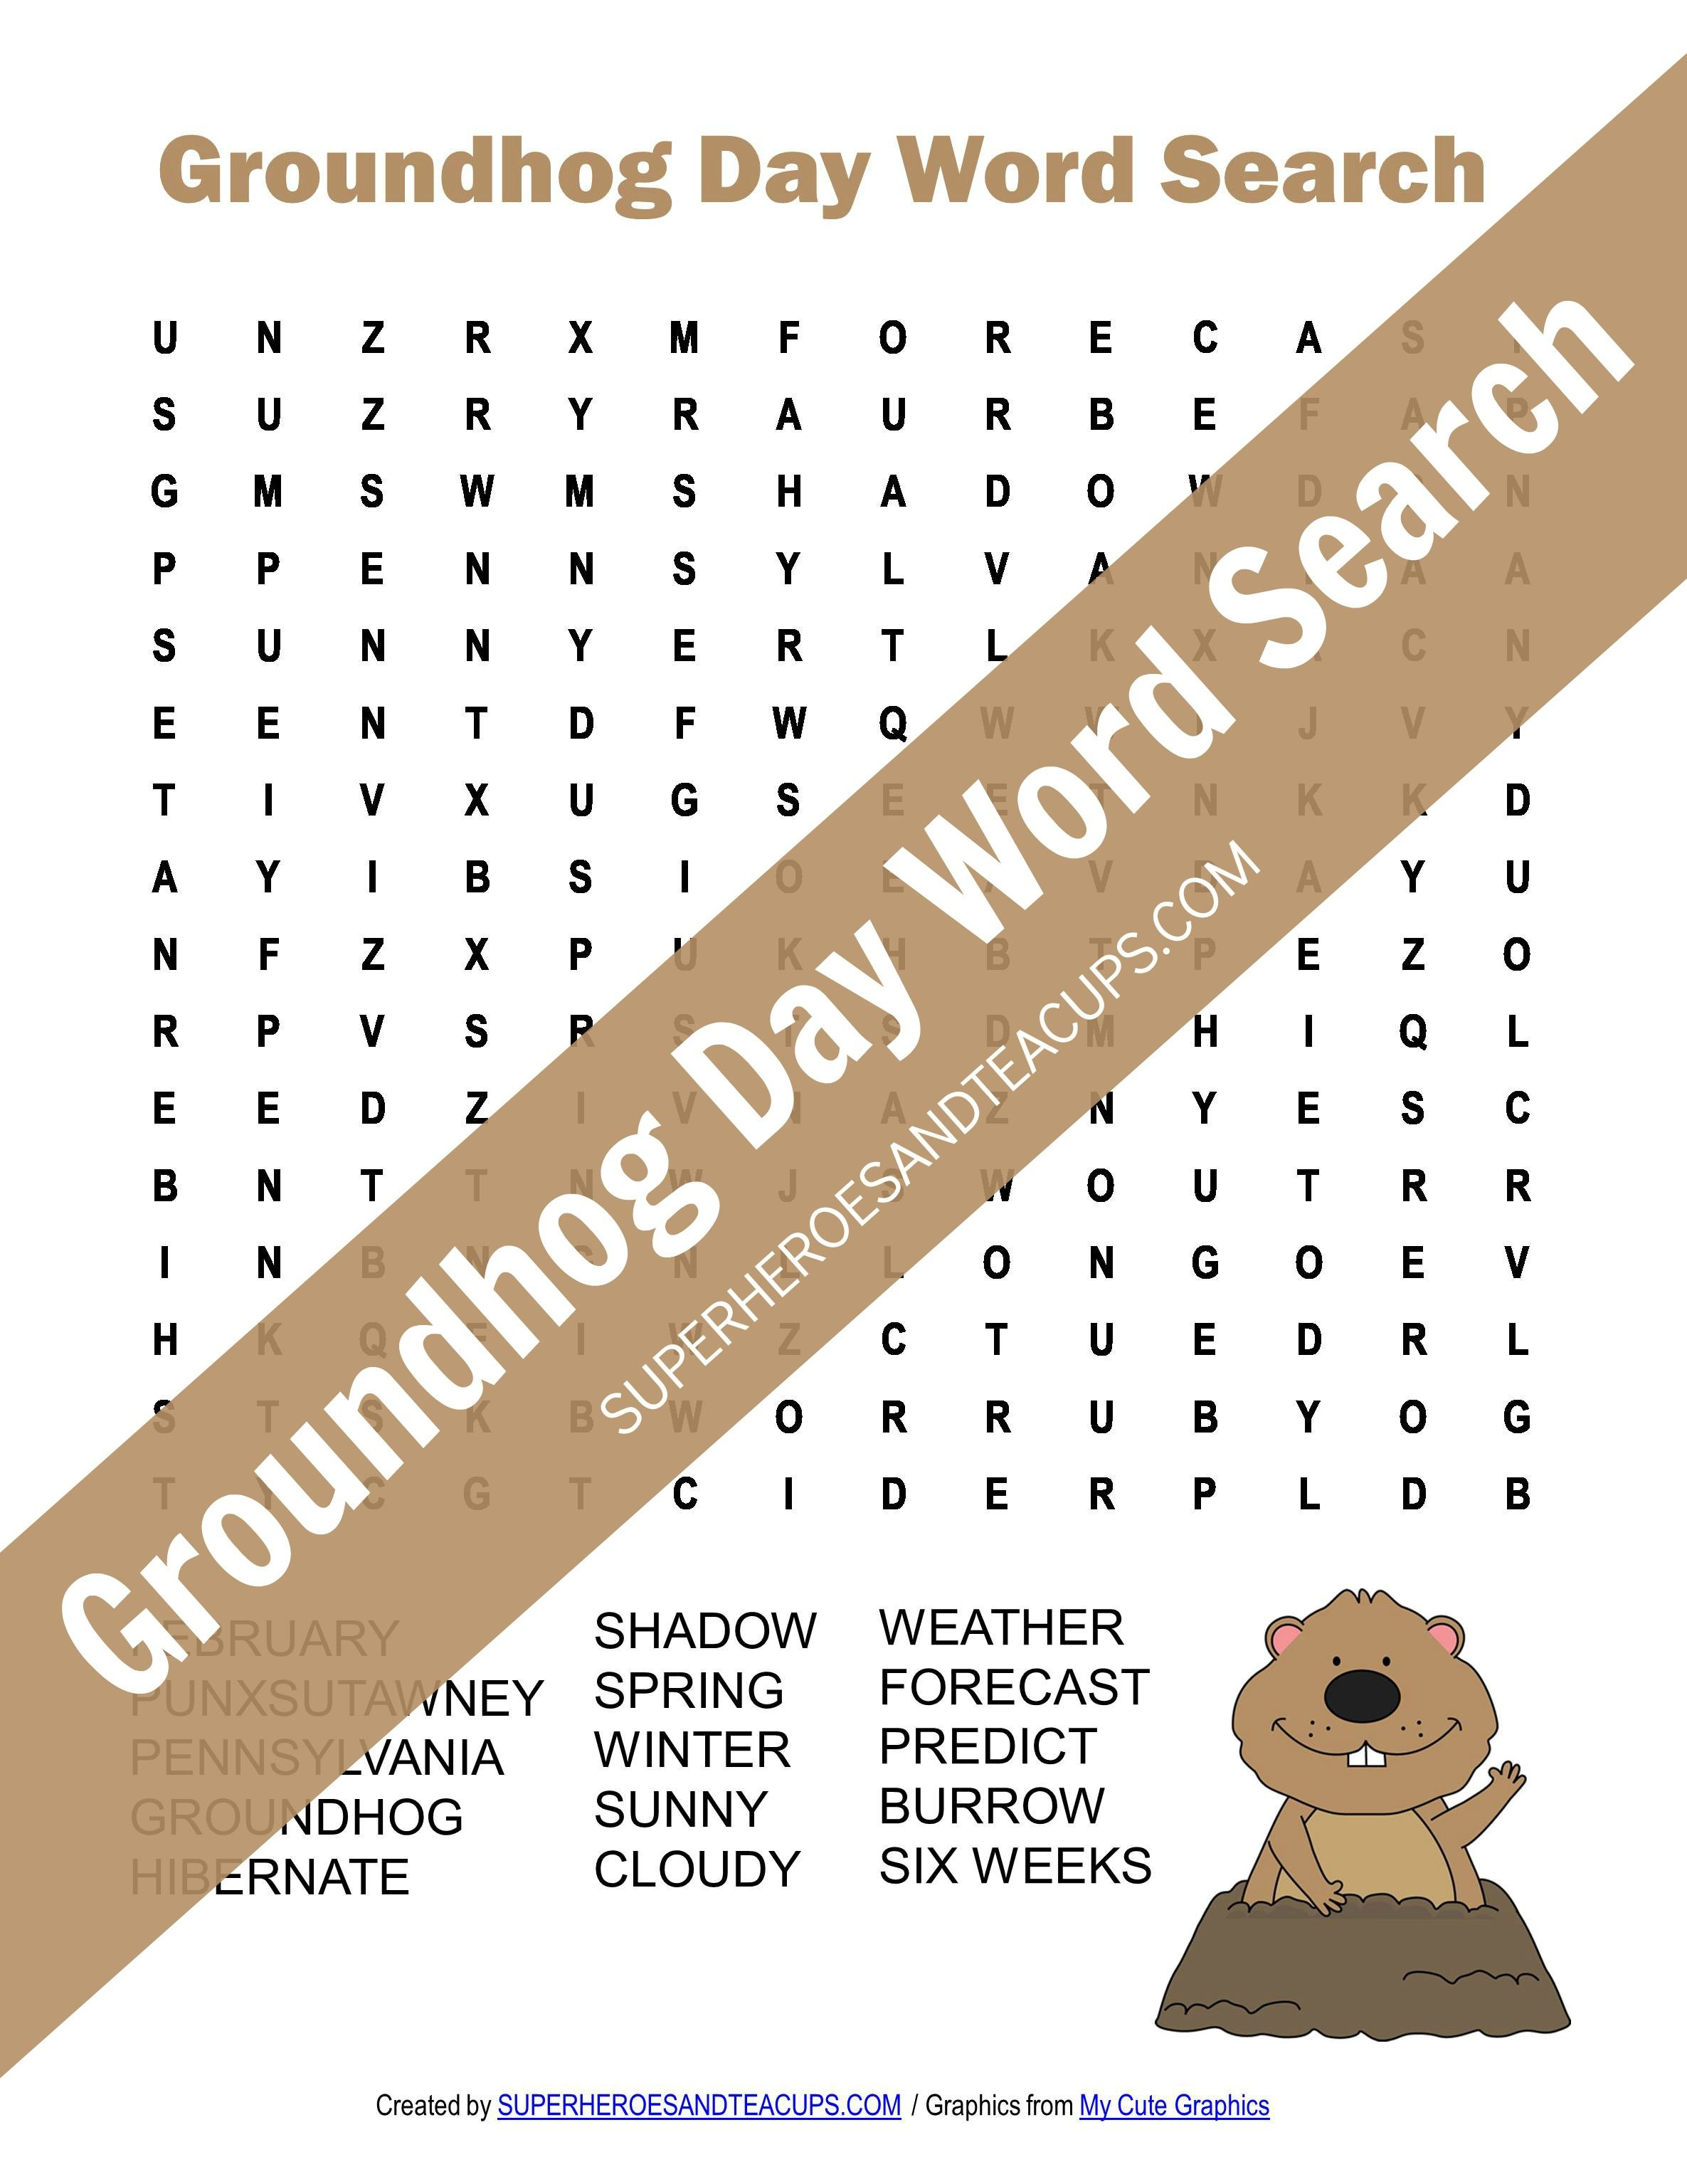 Groundhog Day Word Search Free Printable   Superheroes And Teacups - Groundhog Day Crossword Puzzles Printable